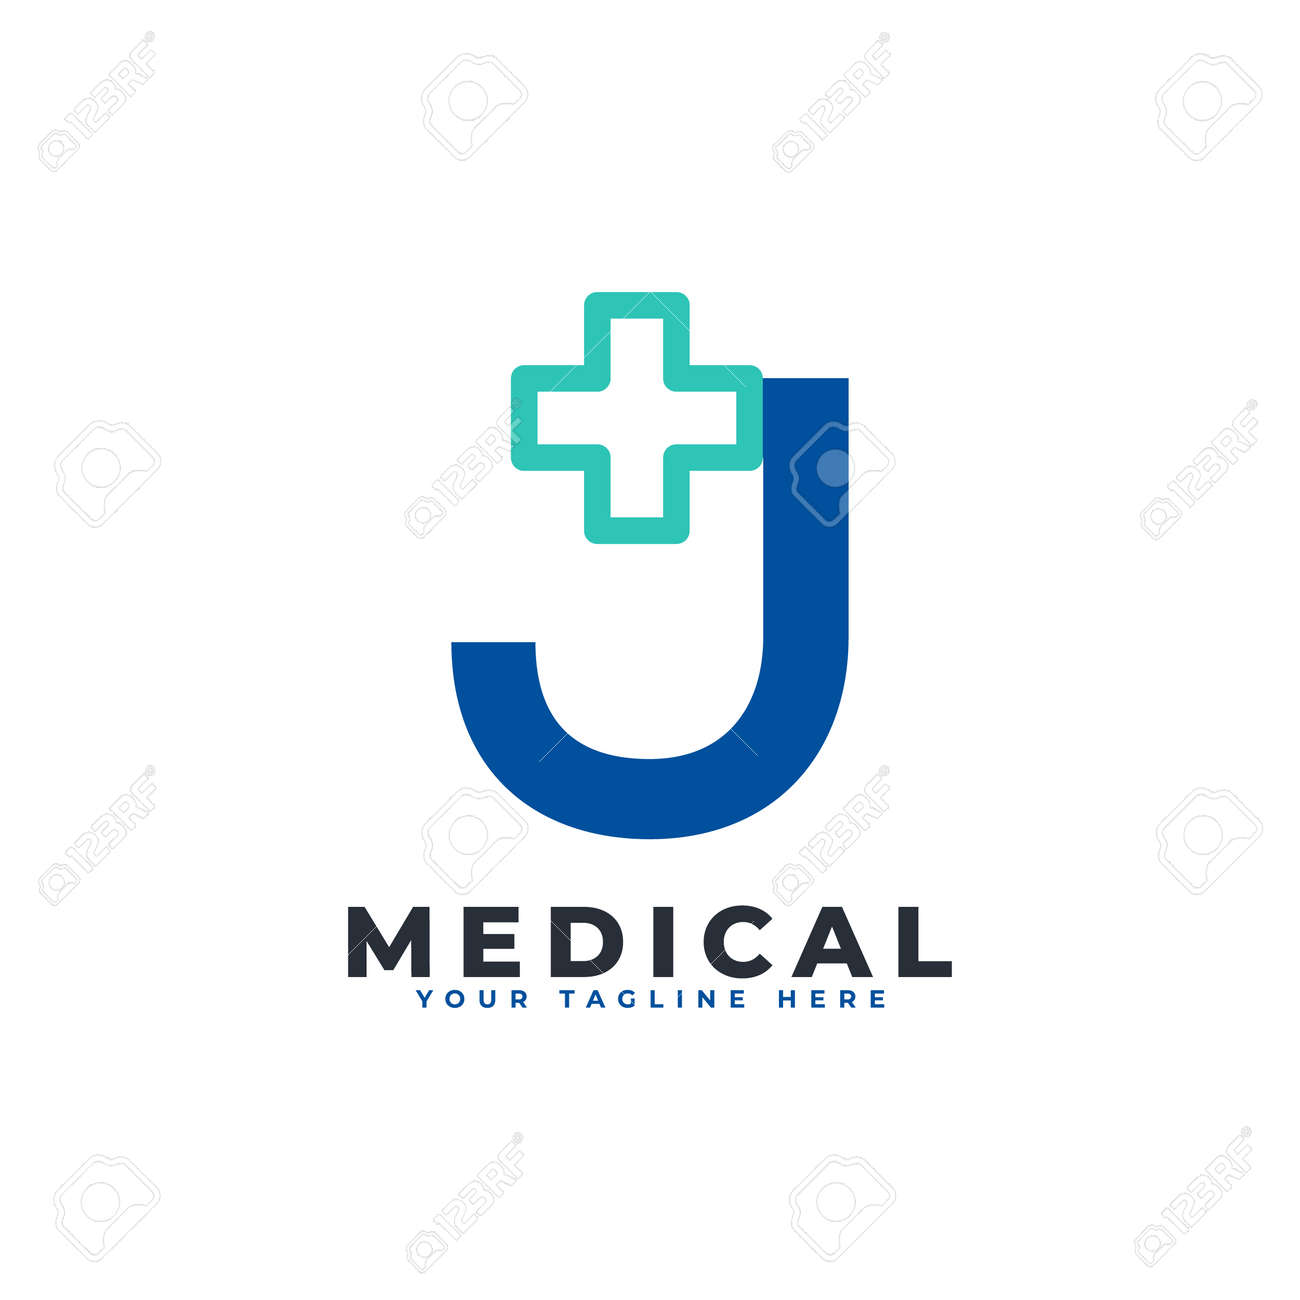 Letter J cross plus logo. Usable for Business, Science, Healthcare, Medical, Hospital and Nature Logos. - 168249701